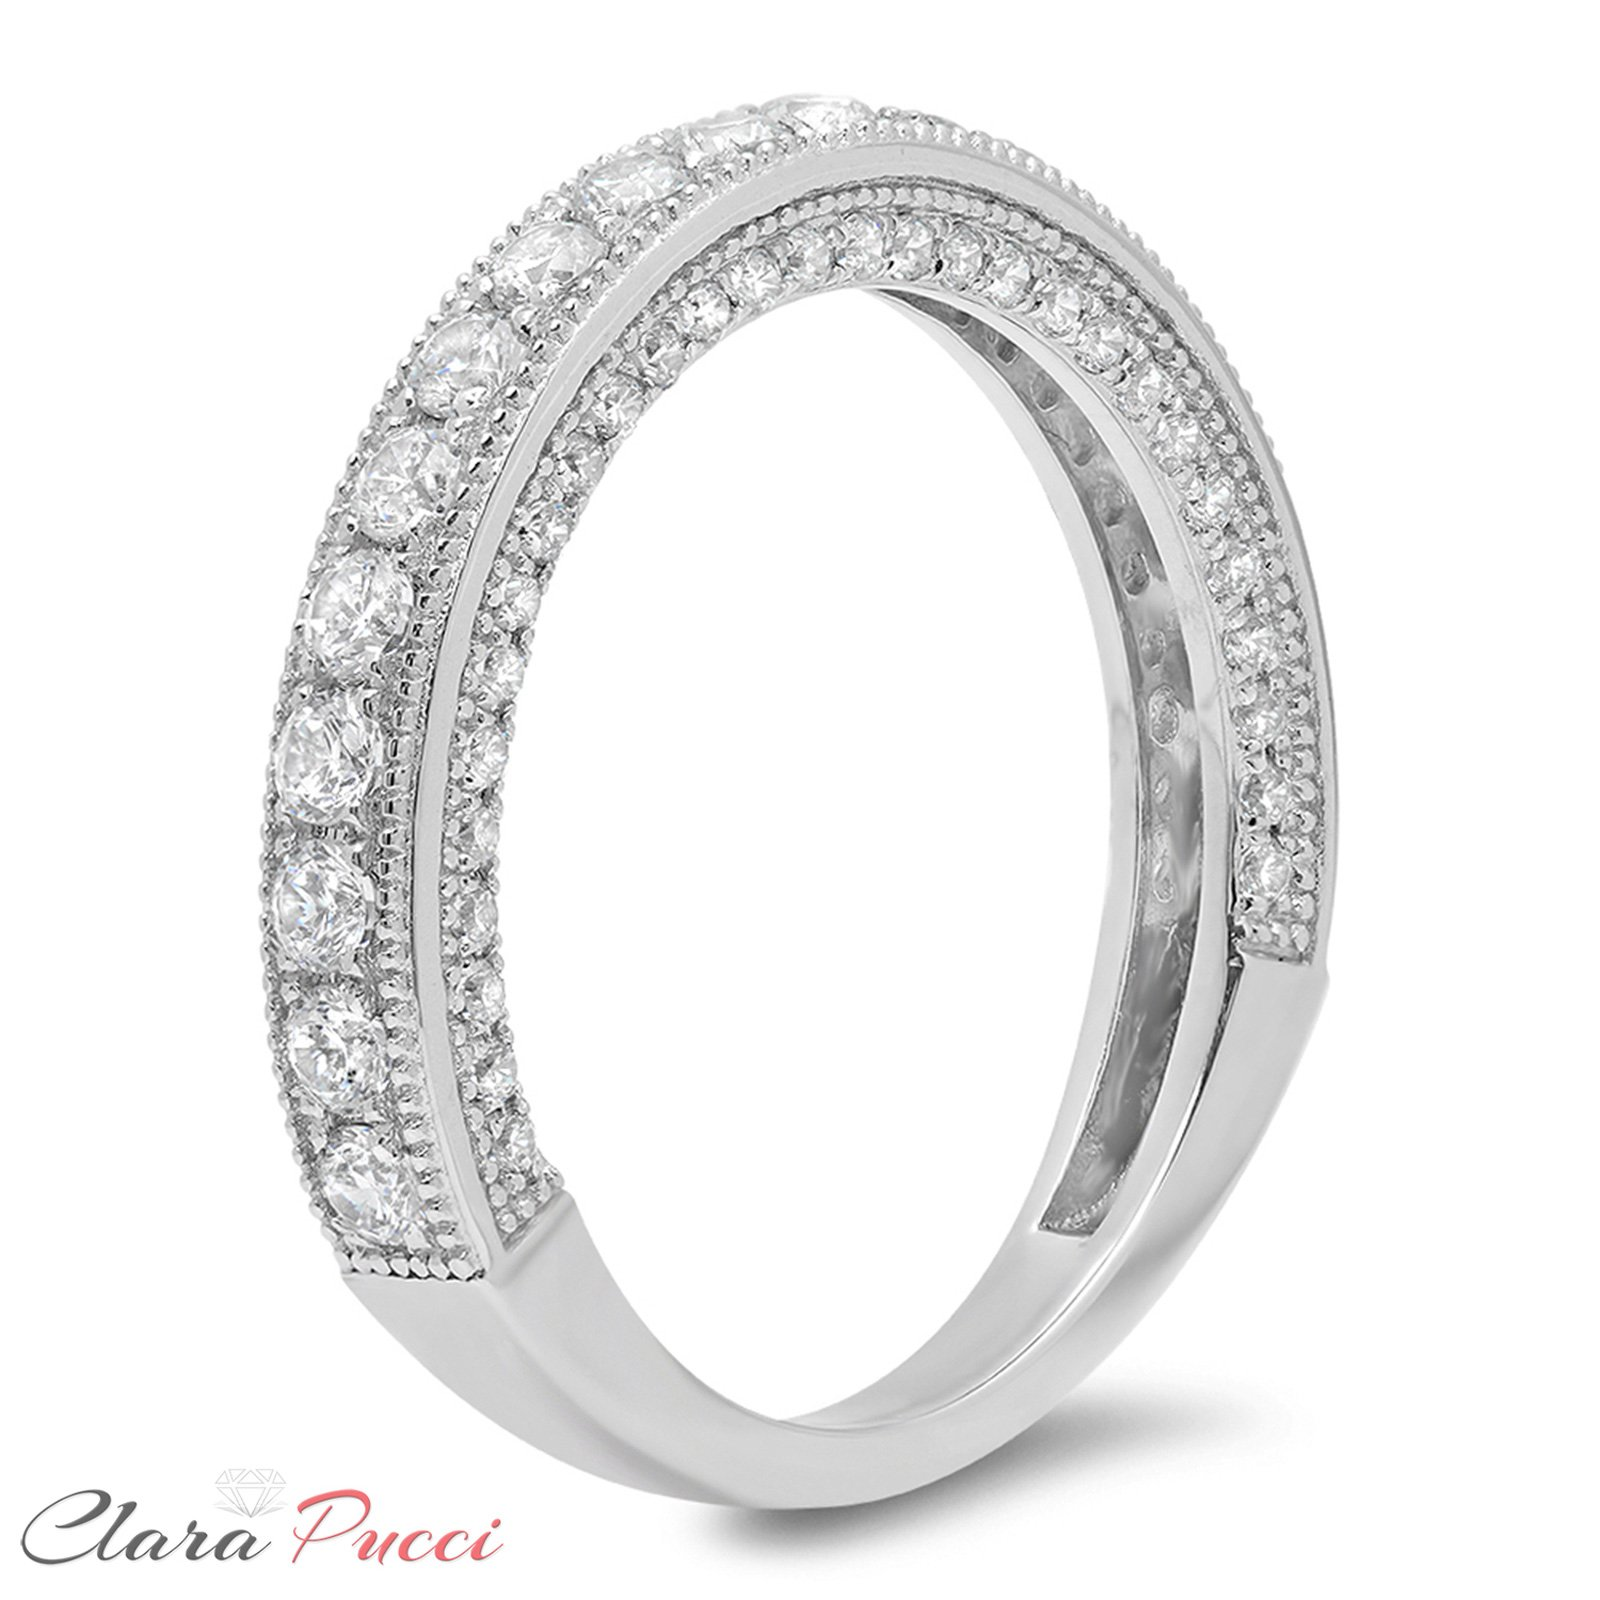 1.10 CT Round Cut CZ Pave Set Wedding Bridal Eternity Engagement Band Ring 14k White Gold, Size 8 by Clara Pucci (Image #2)